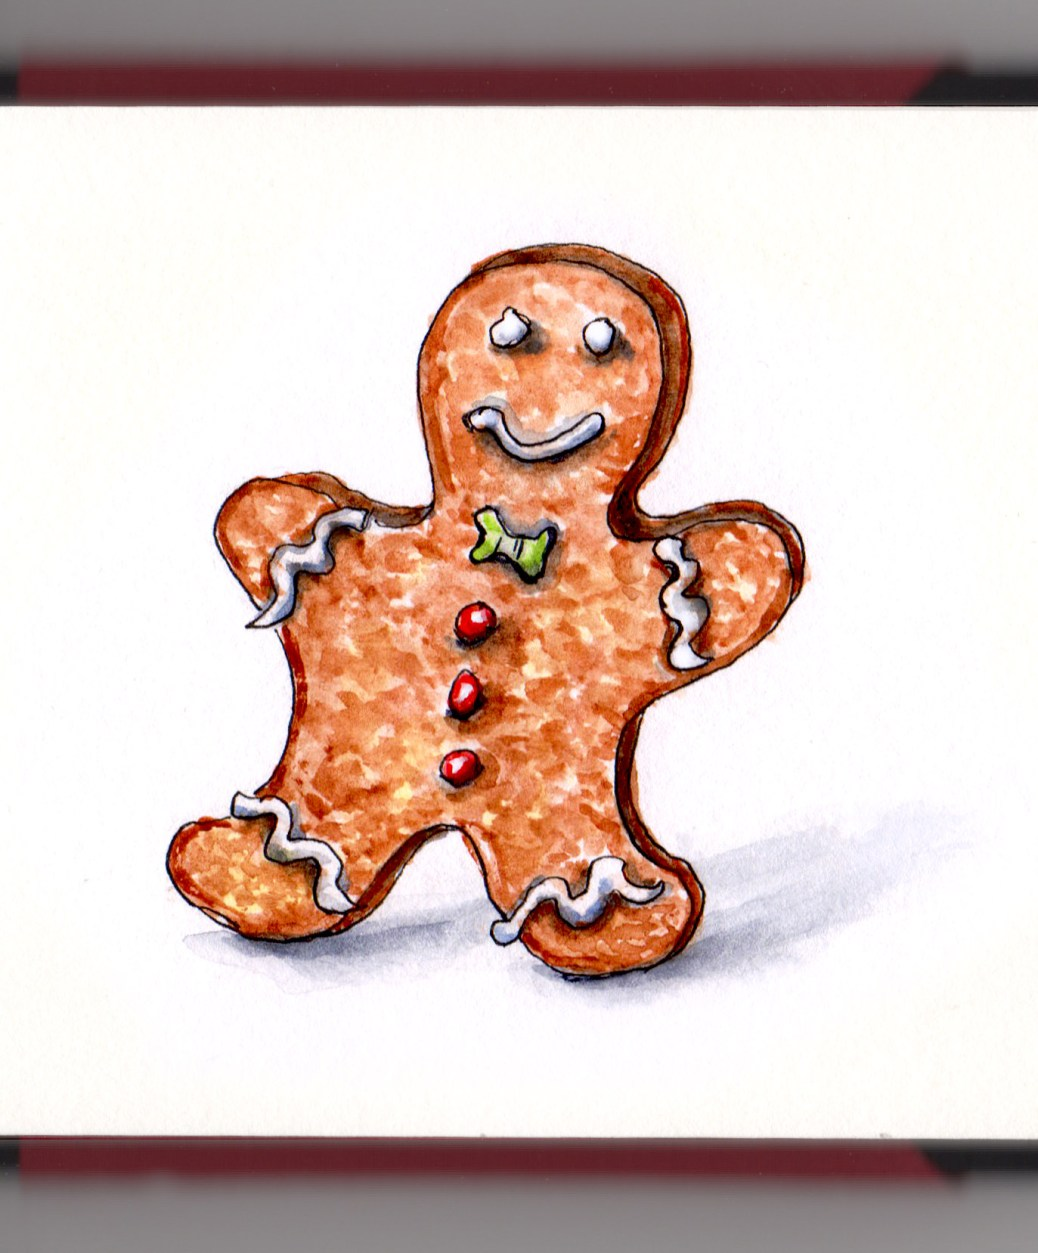 Day 14 - #WorldWatercolorGroup The Gingerbread Man story can't catch me I'm the